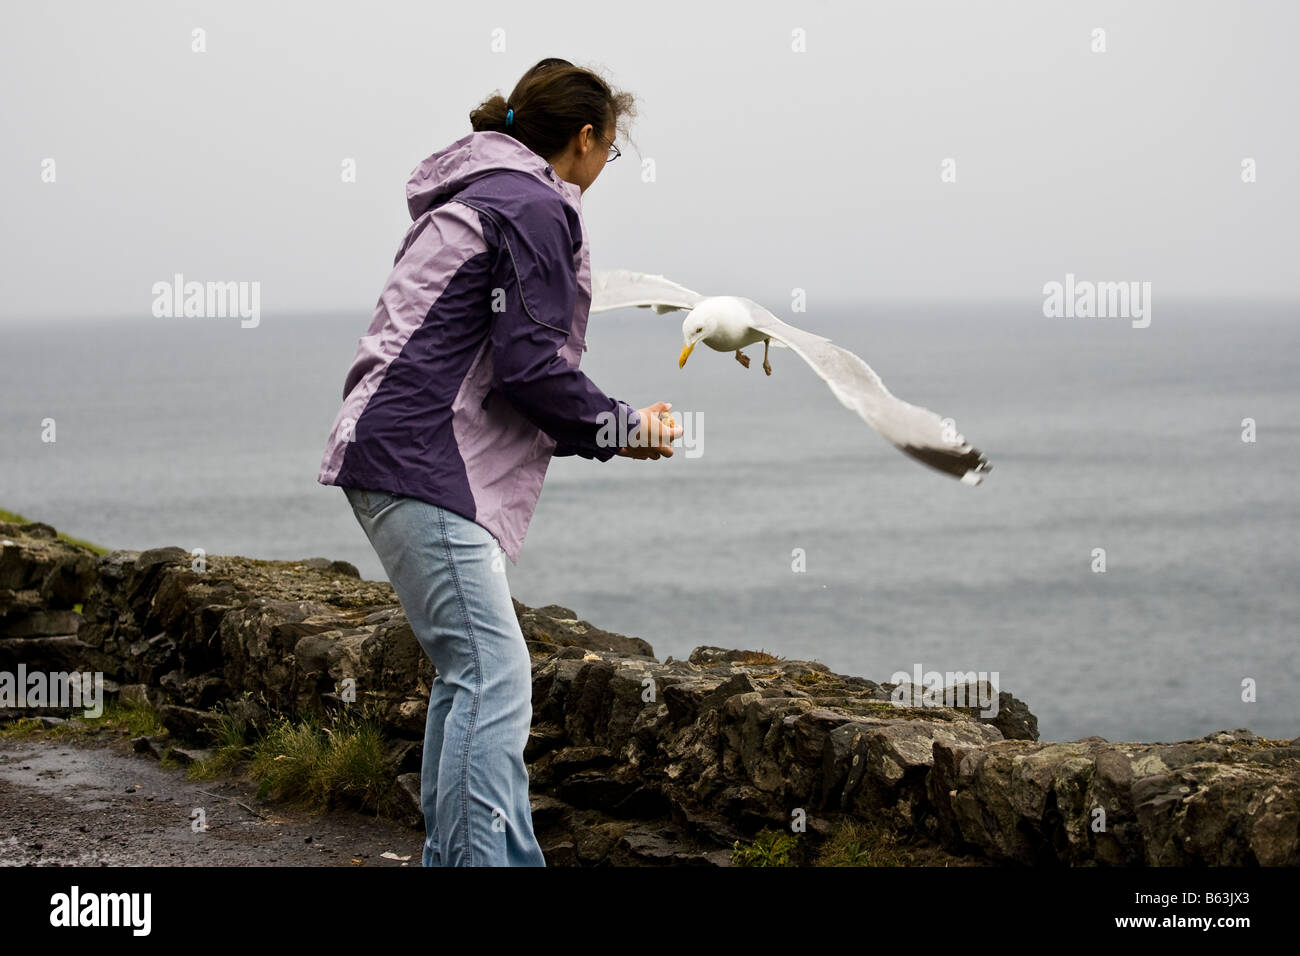 Girl feeding a seagull with bread on a dull grey day - Stock Image